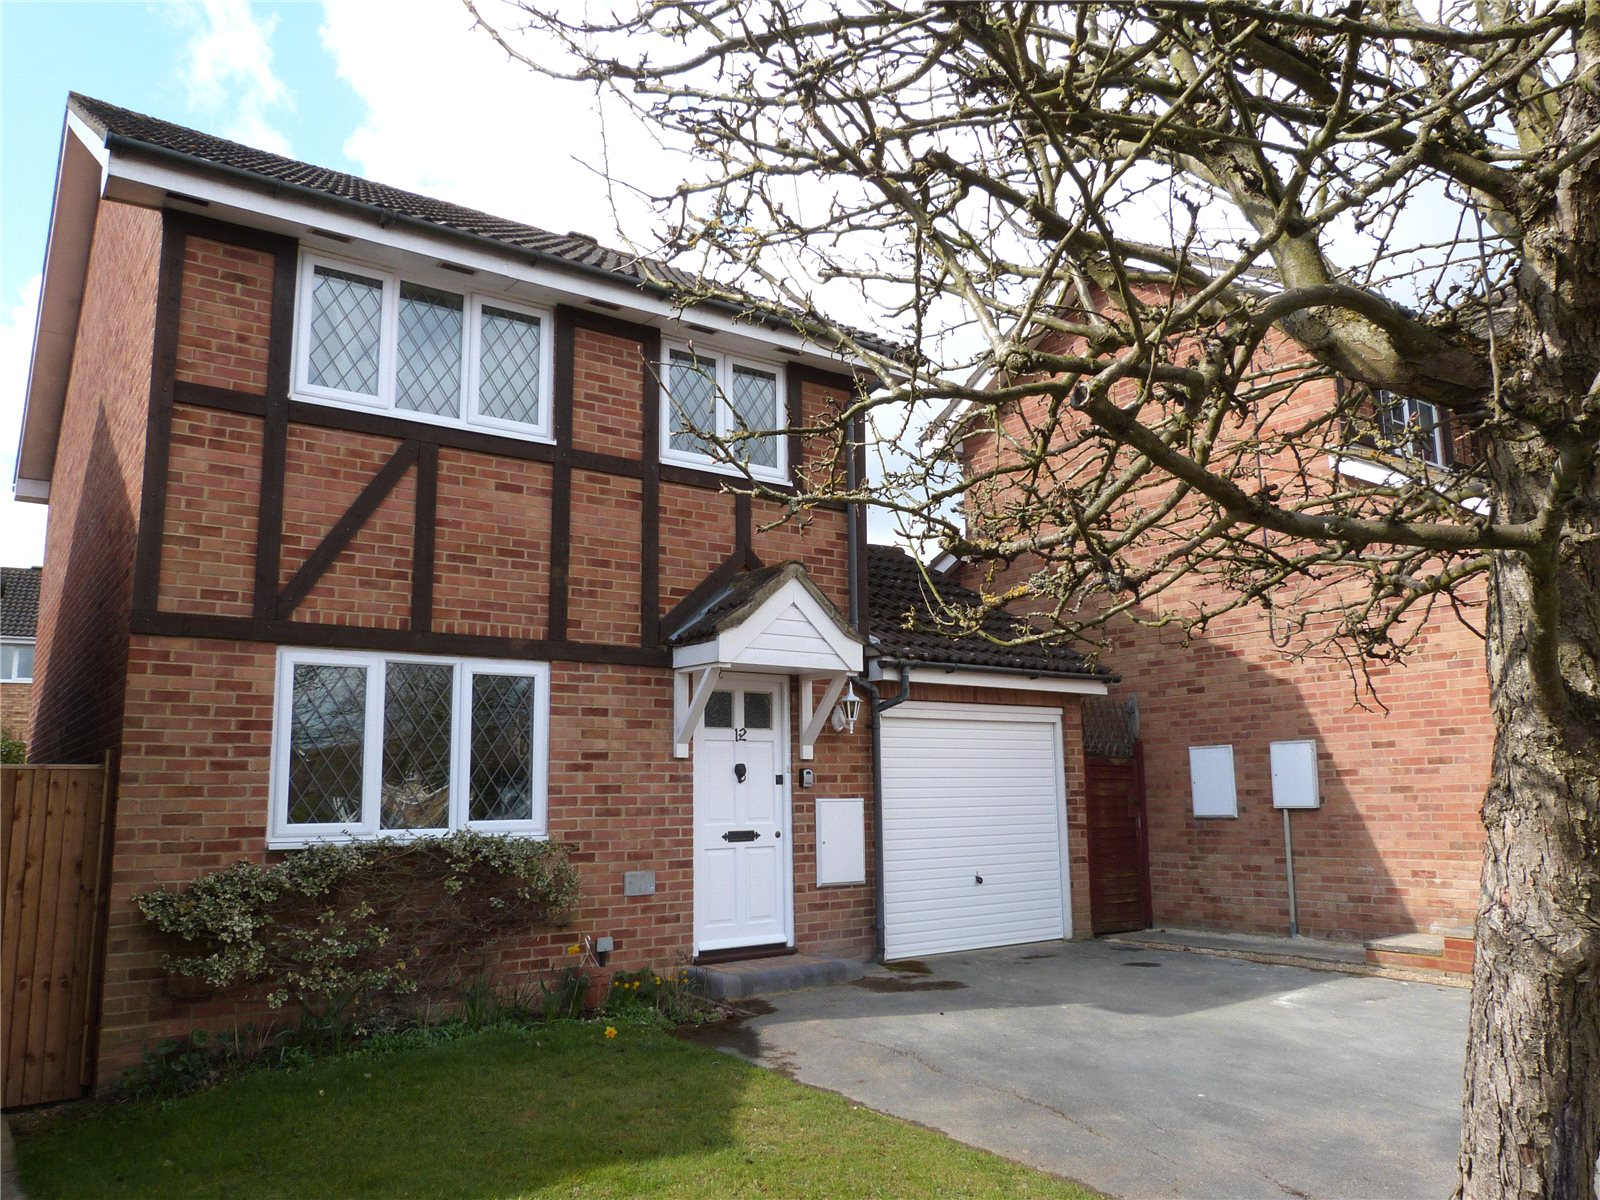 3 Bedrooms Detached House for rent in Tippits Mead, Bracknell, Berkshire, RG42